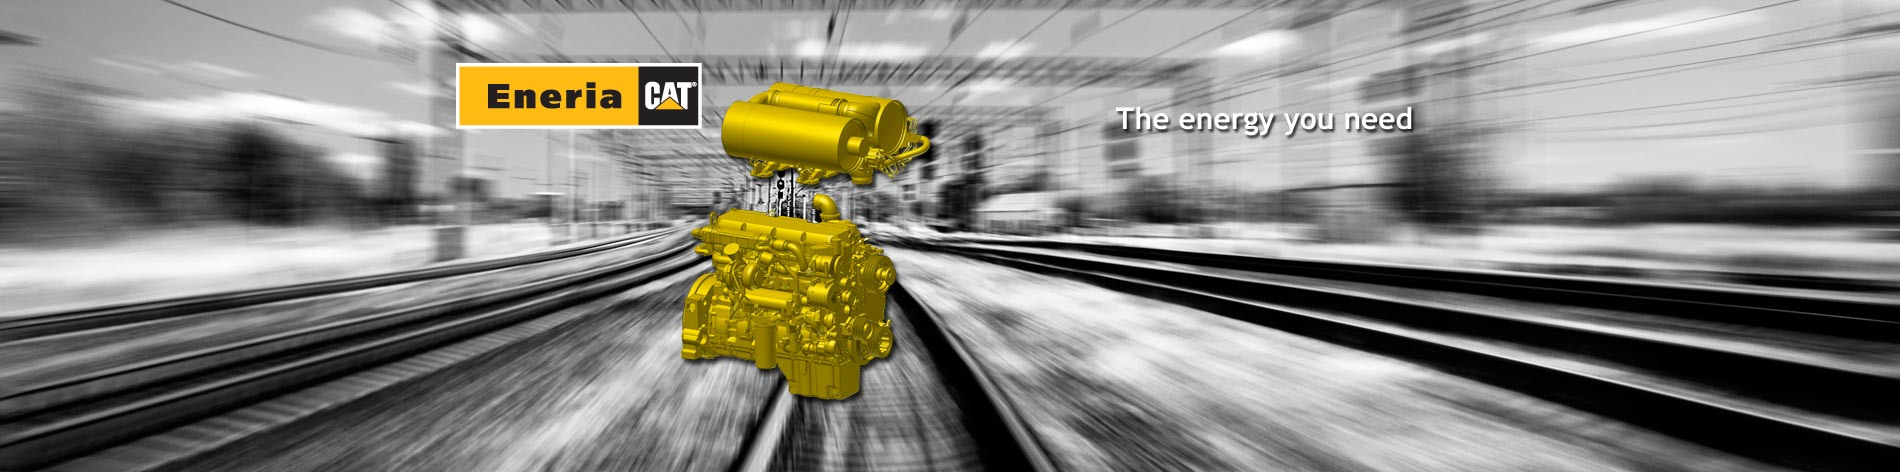 We offer you a wide range of Caterpillar diesel engines in many different versions designed for industrial or railway applications.